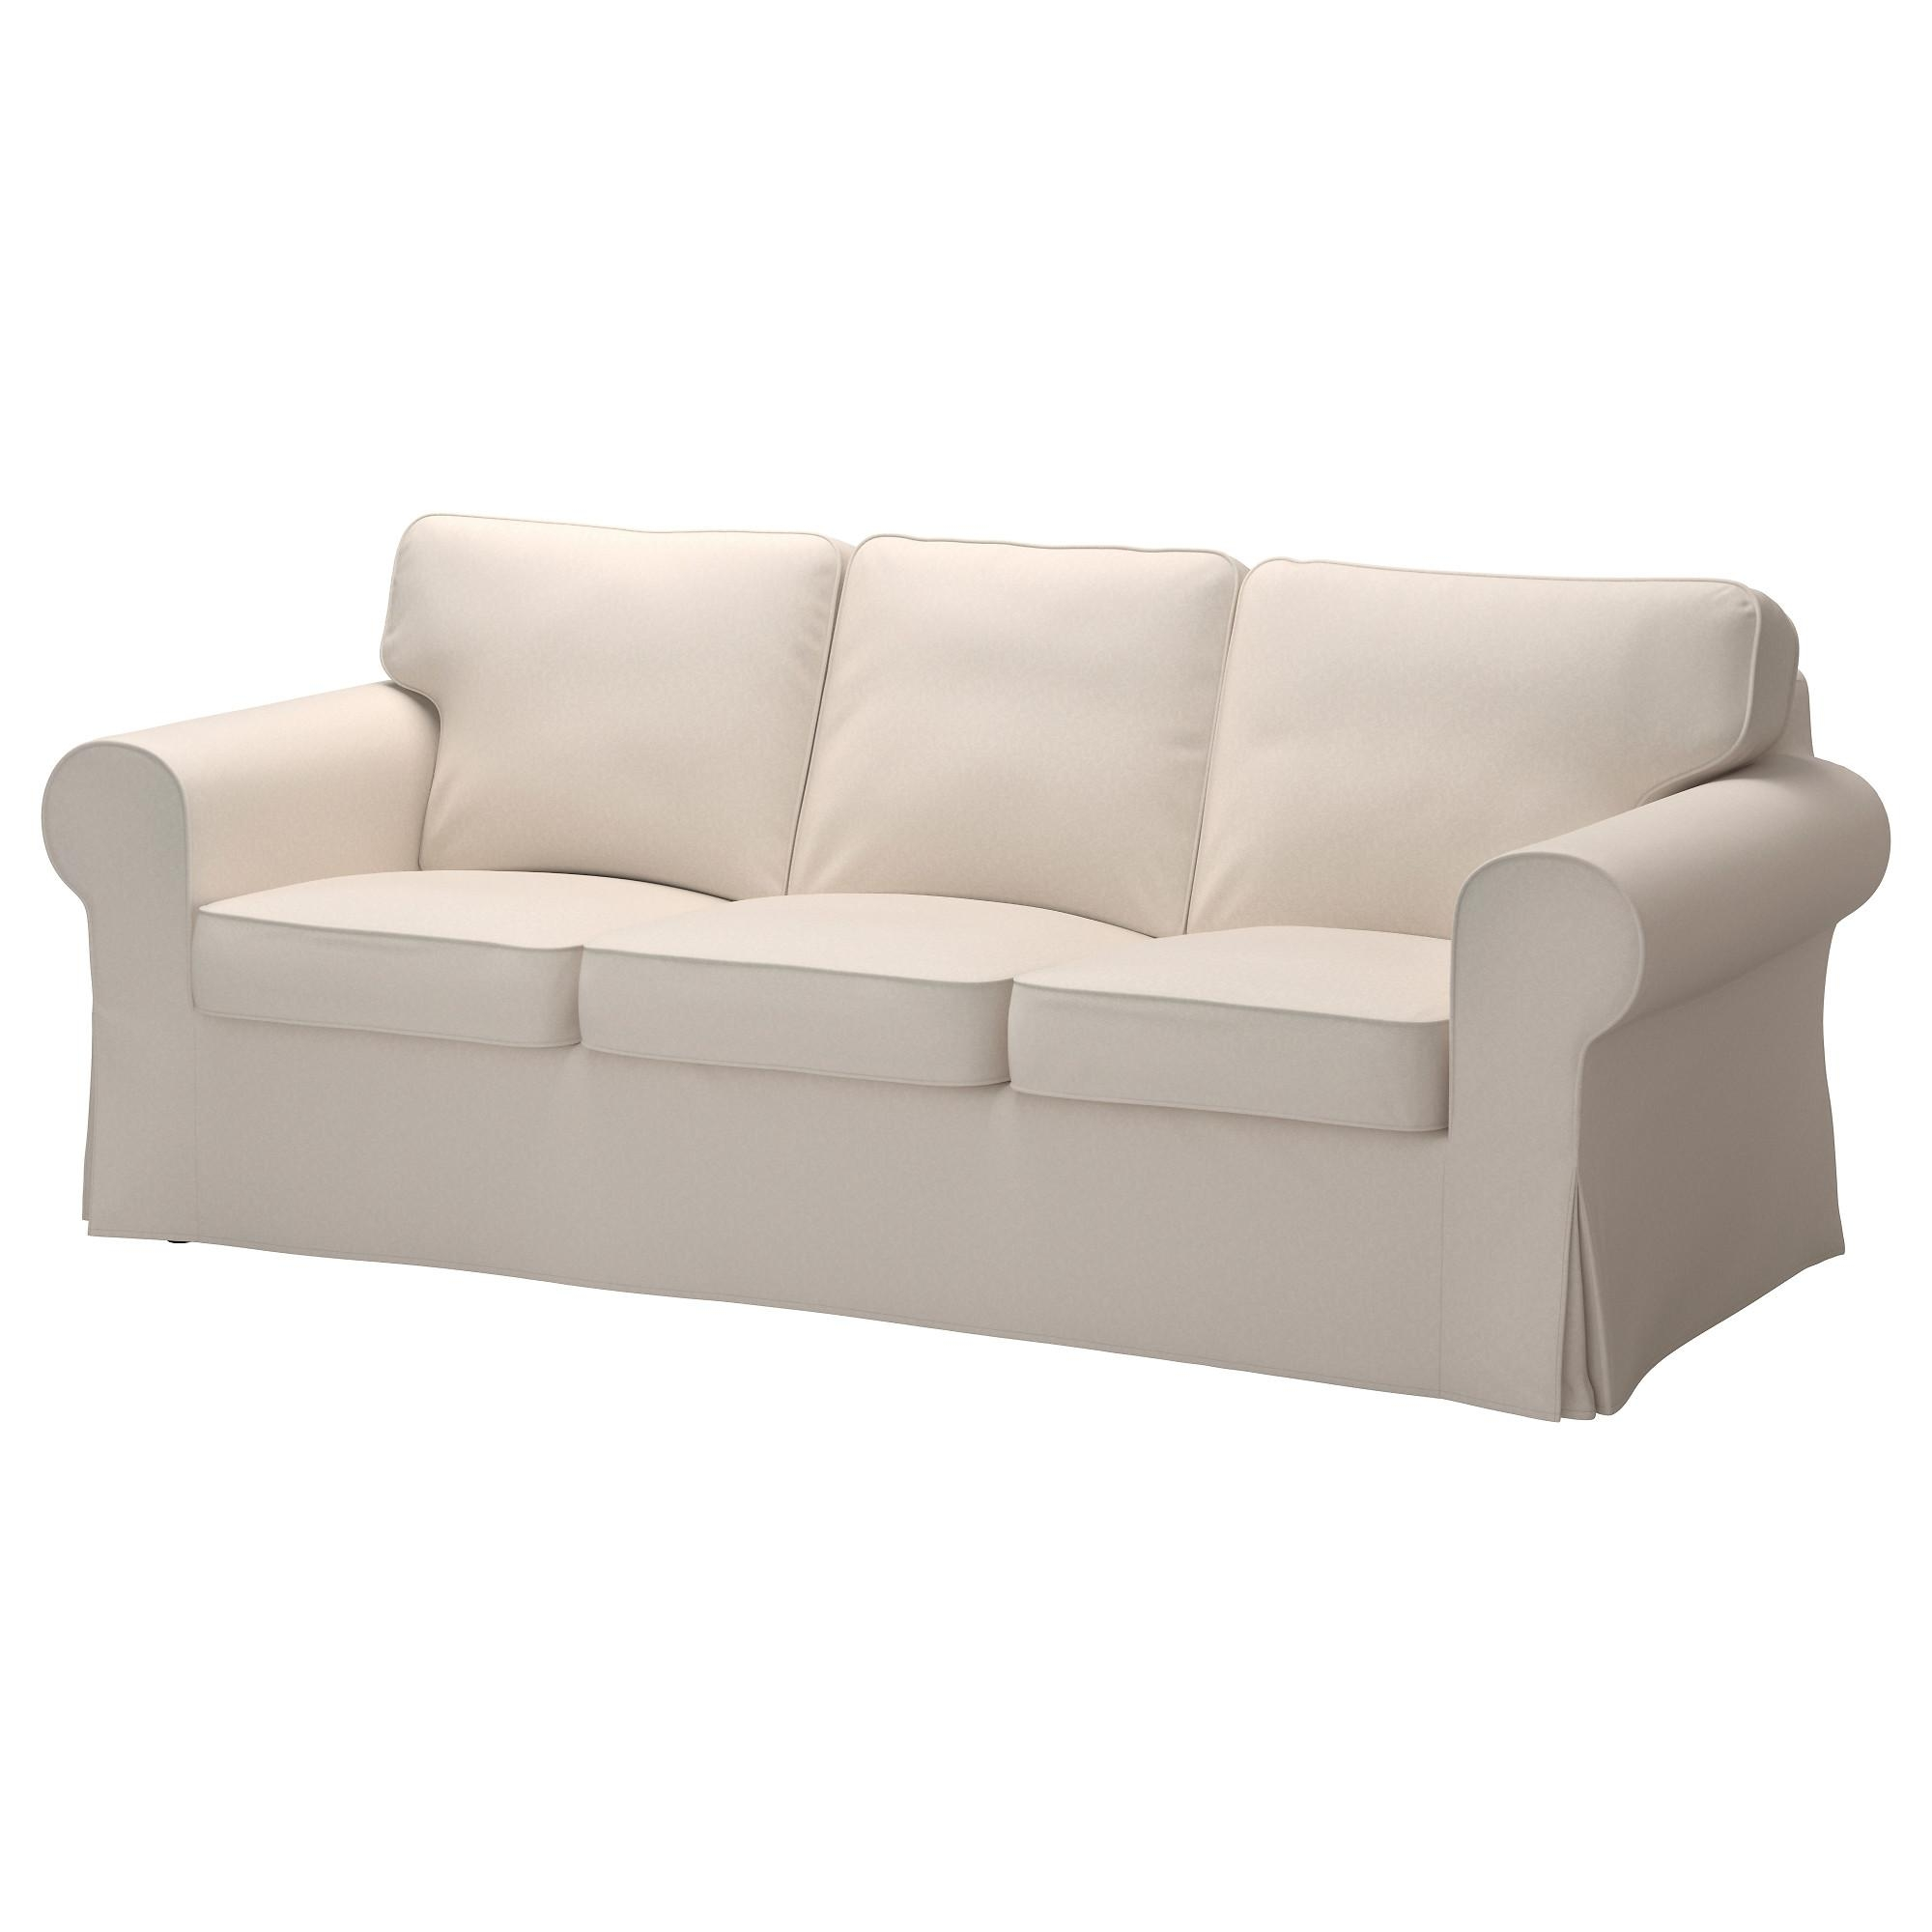 Sofa Ideas 3 Piece Sectional Sofa Slipcovers Explore 17 of 20